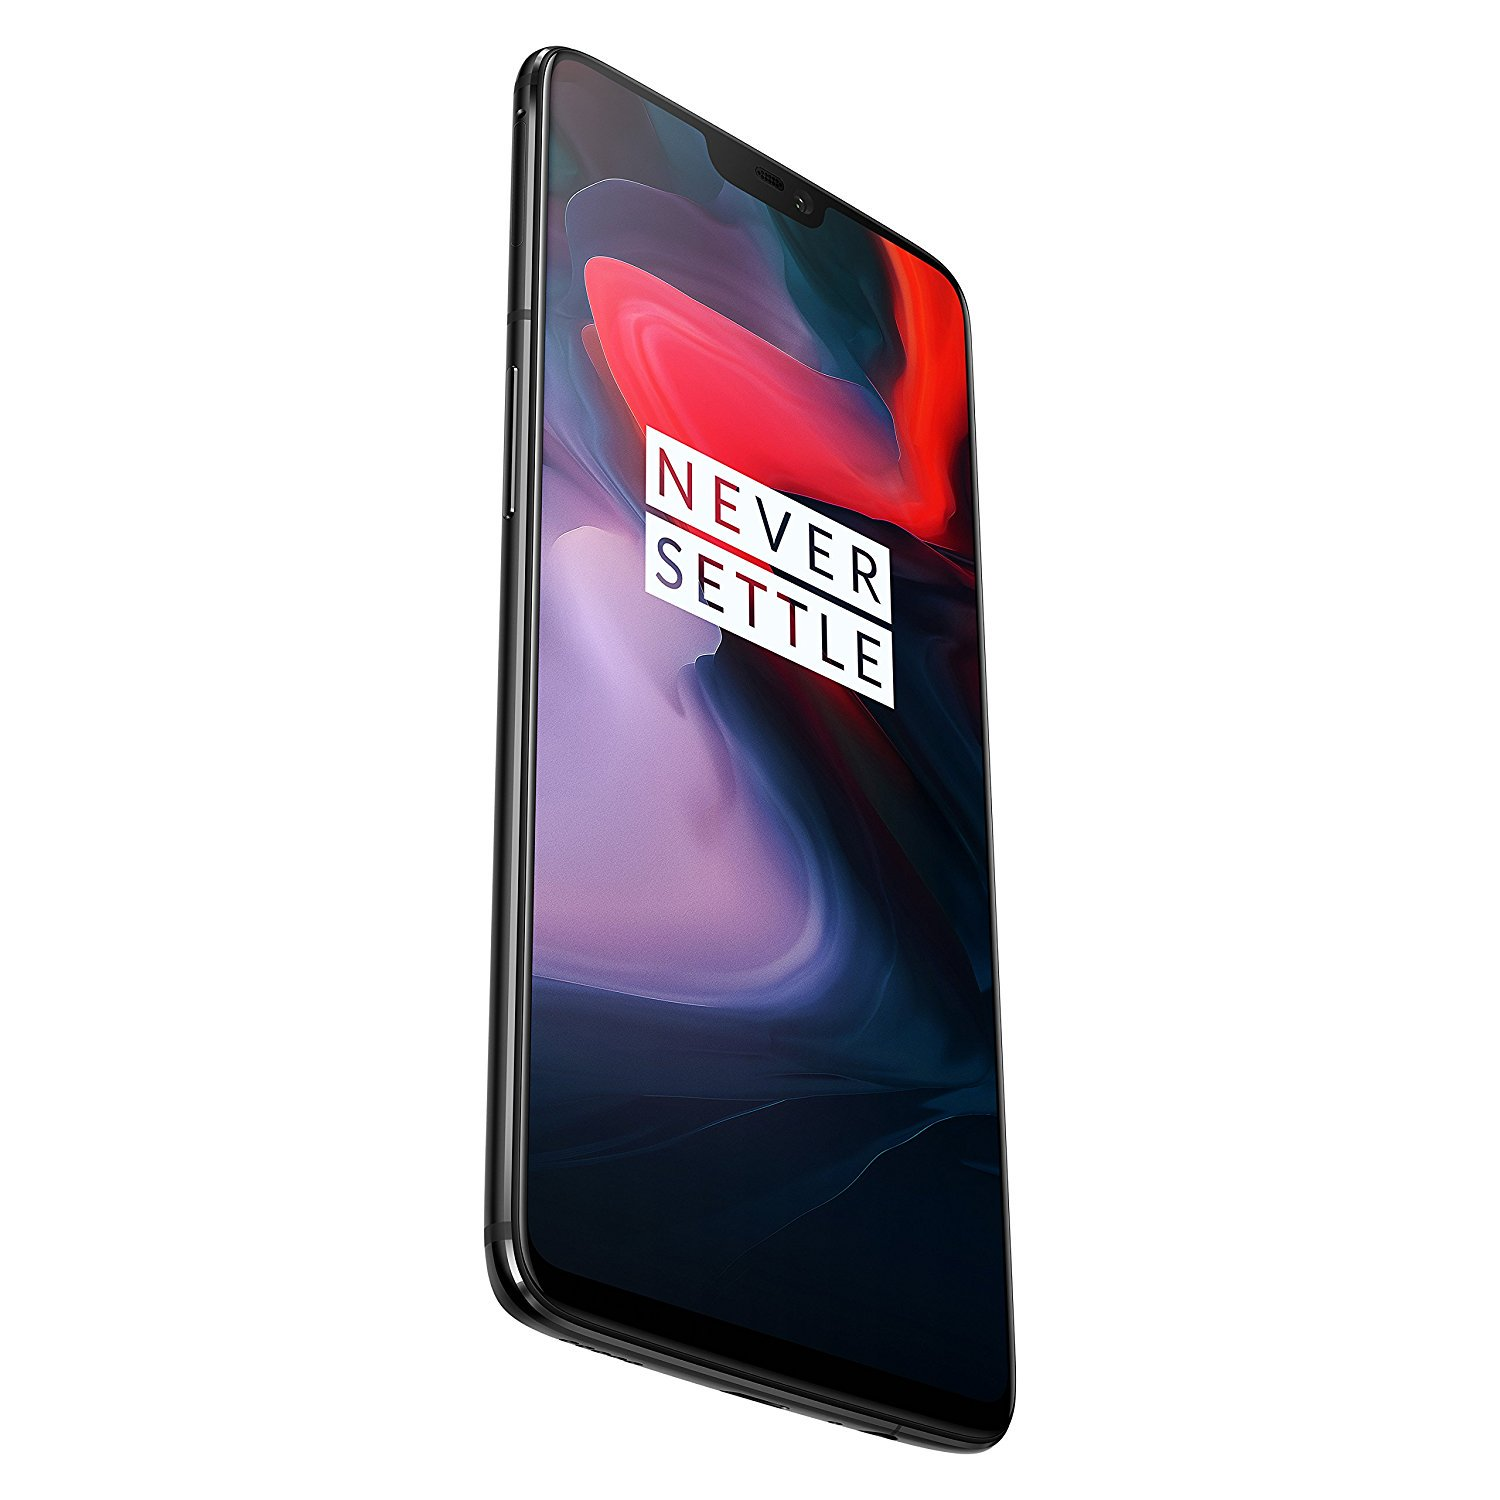 Amazon Listing reveals everything about the OnePlus 6 5